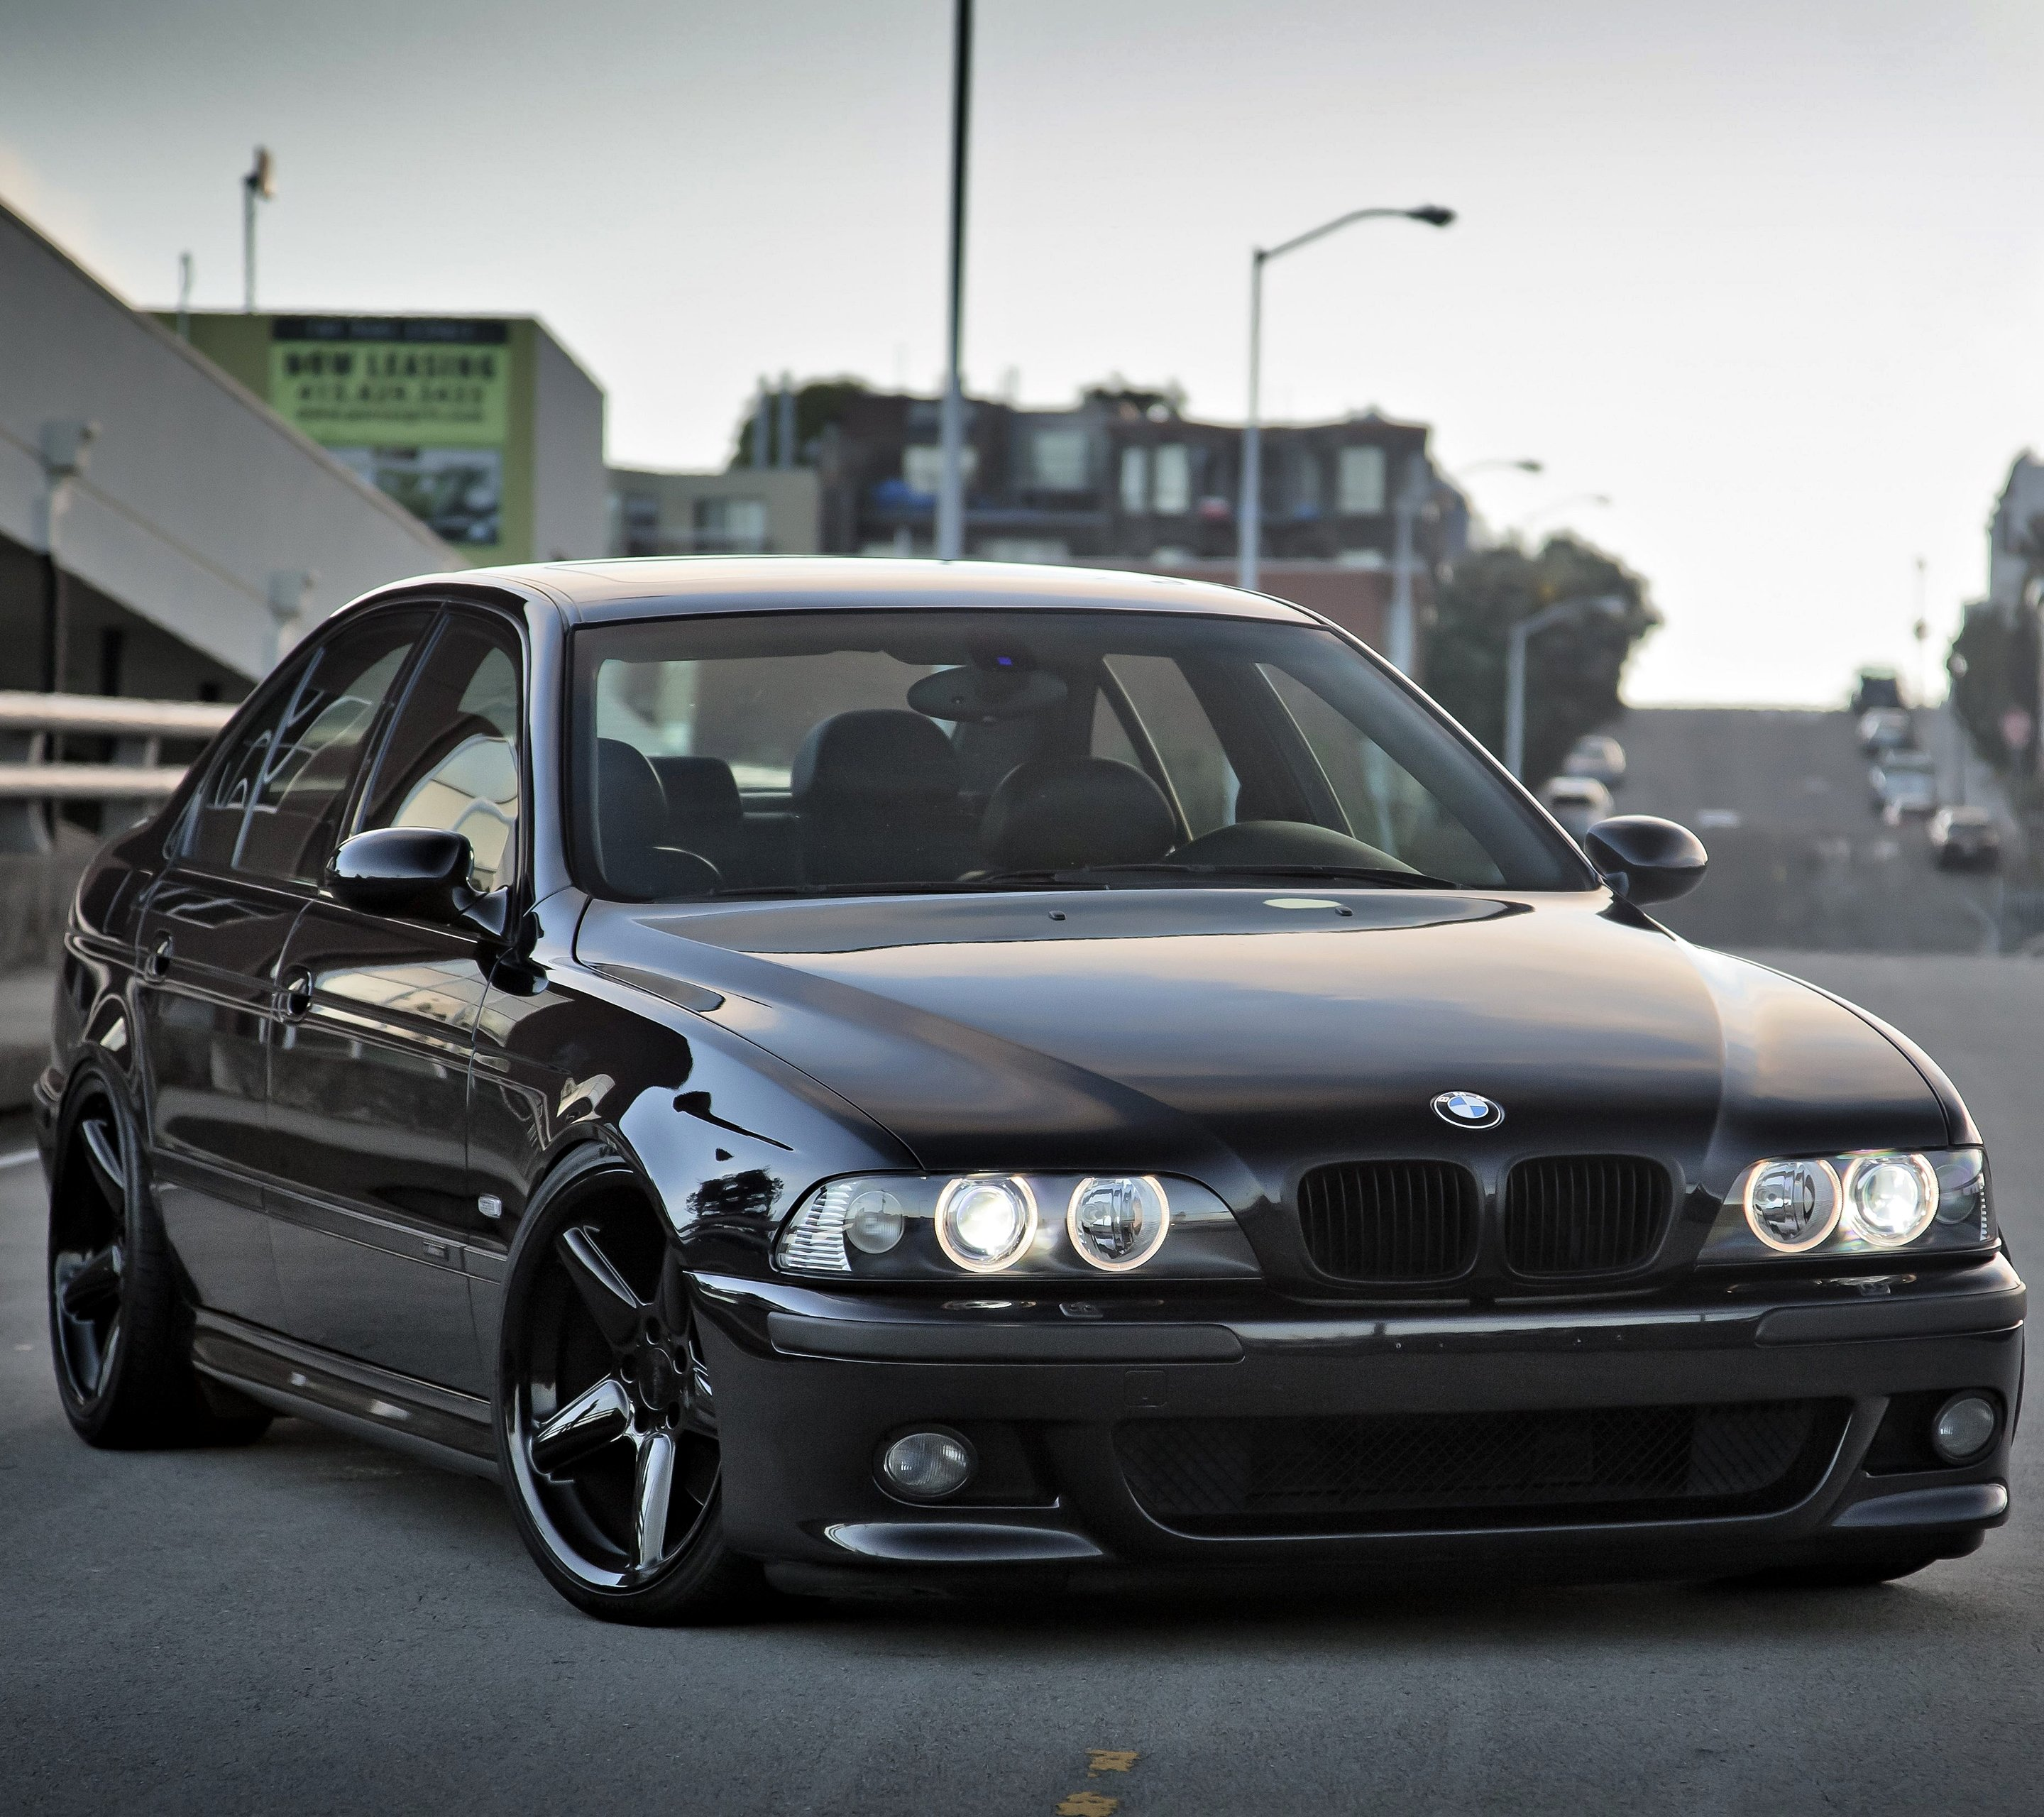 Bmw Wallpapers And Backgrounds: BMW E39 M5 Wallpaper